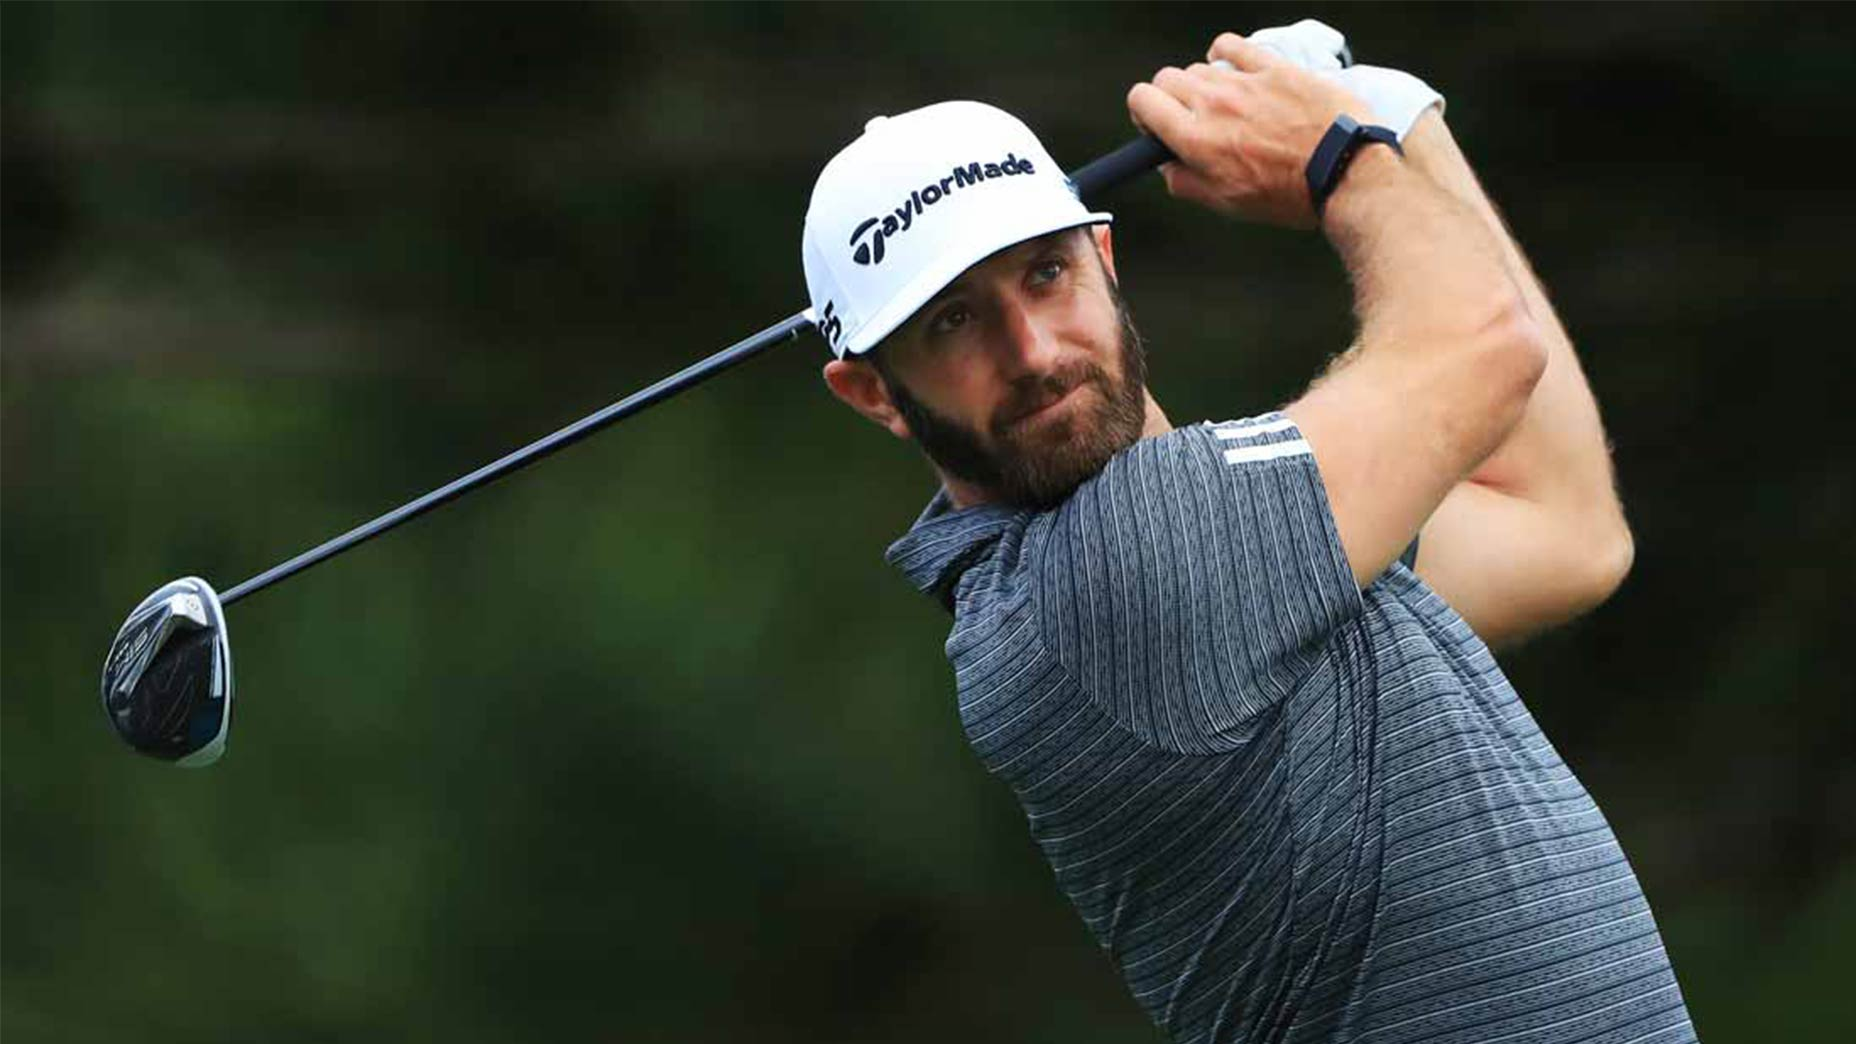 Dustin Johnson hits a drive.